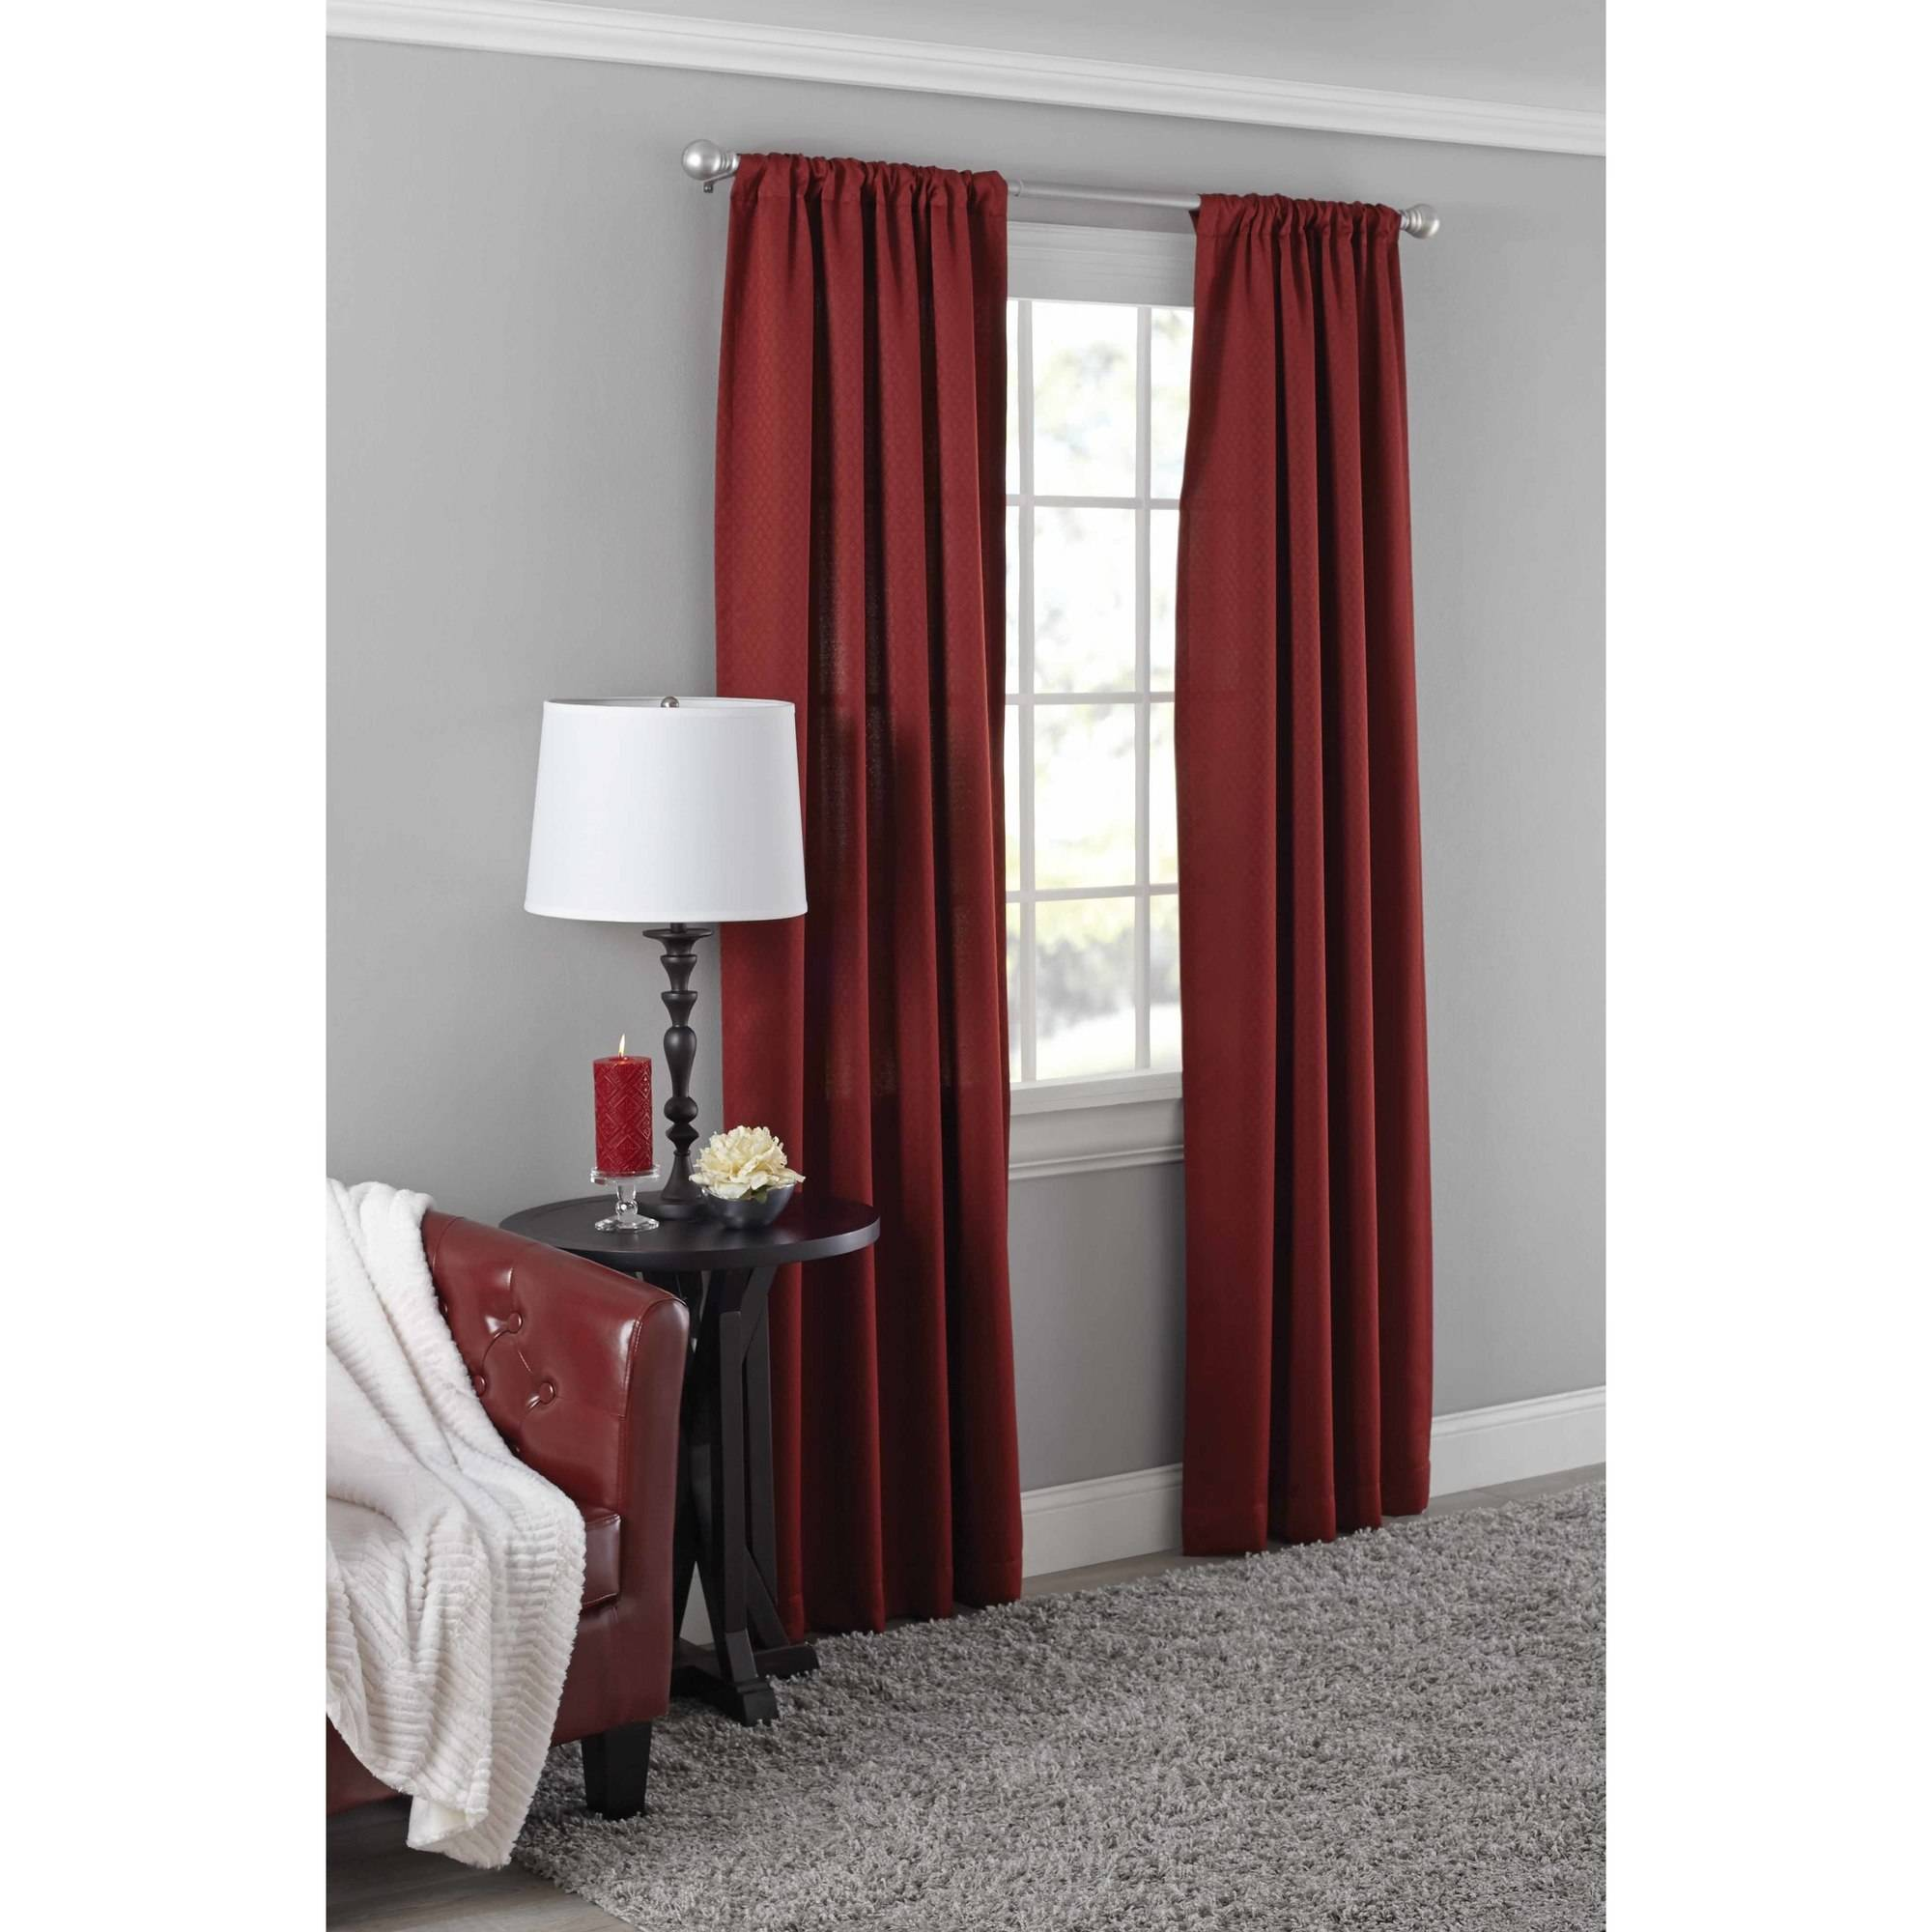 mainstays diamond thermapanel curtain panel multiple colors and sizes